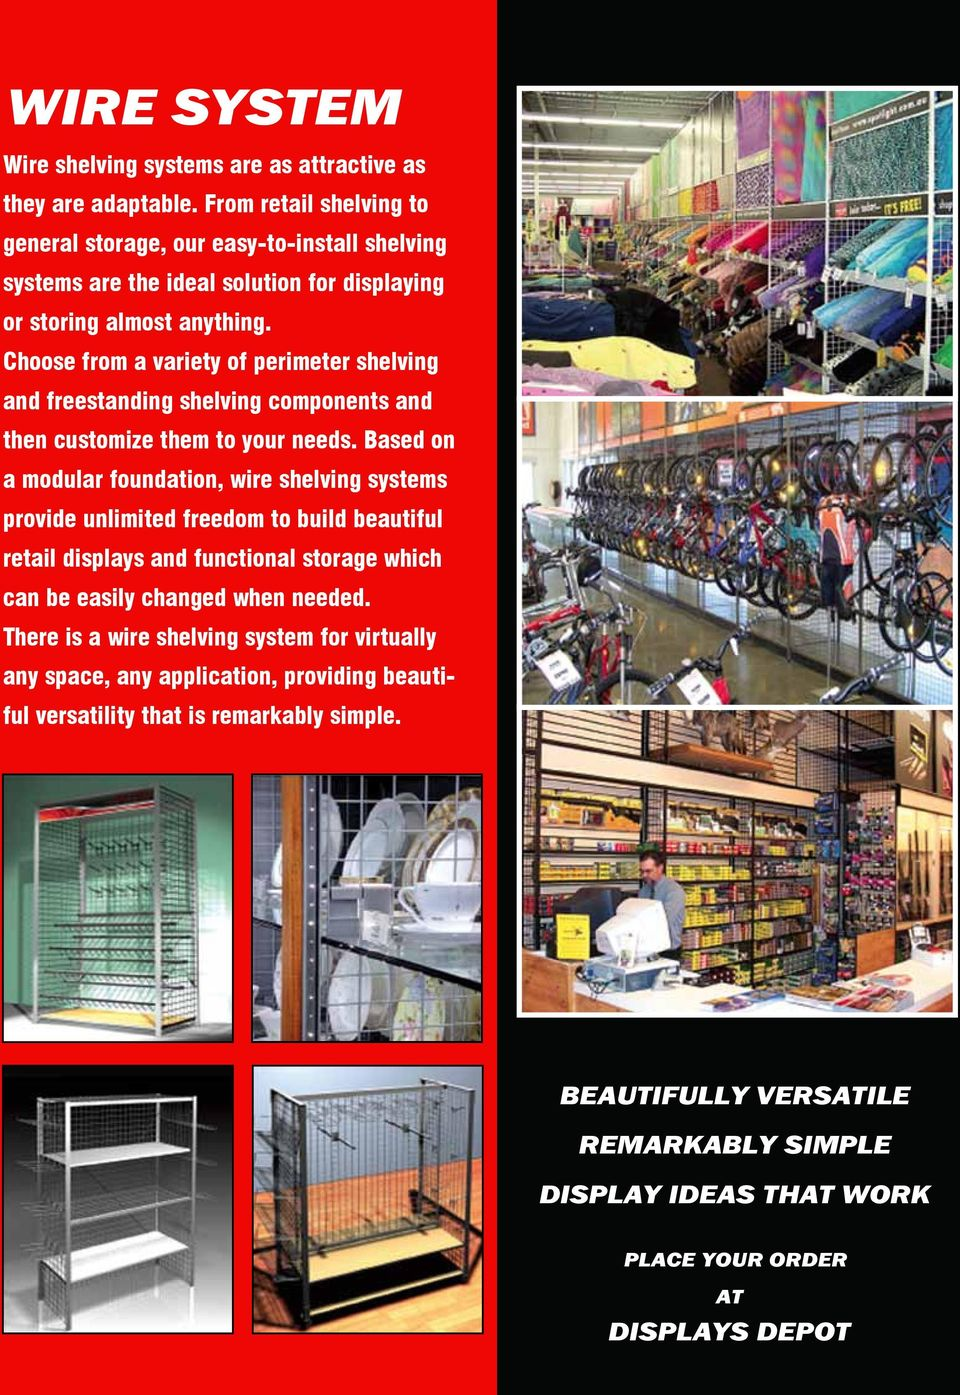 Displays Depot Catalog Your One Stop Fixture Source Since Pdf Mirror Wiring Diagram Get Free Image About Choose From A Variety Of Perimeter Shelving And Freestanding Components Then Customize Them To